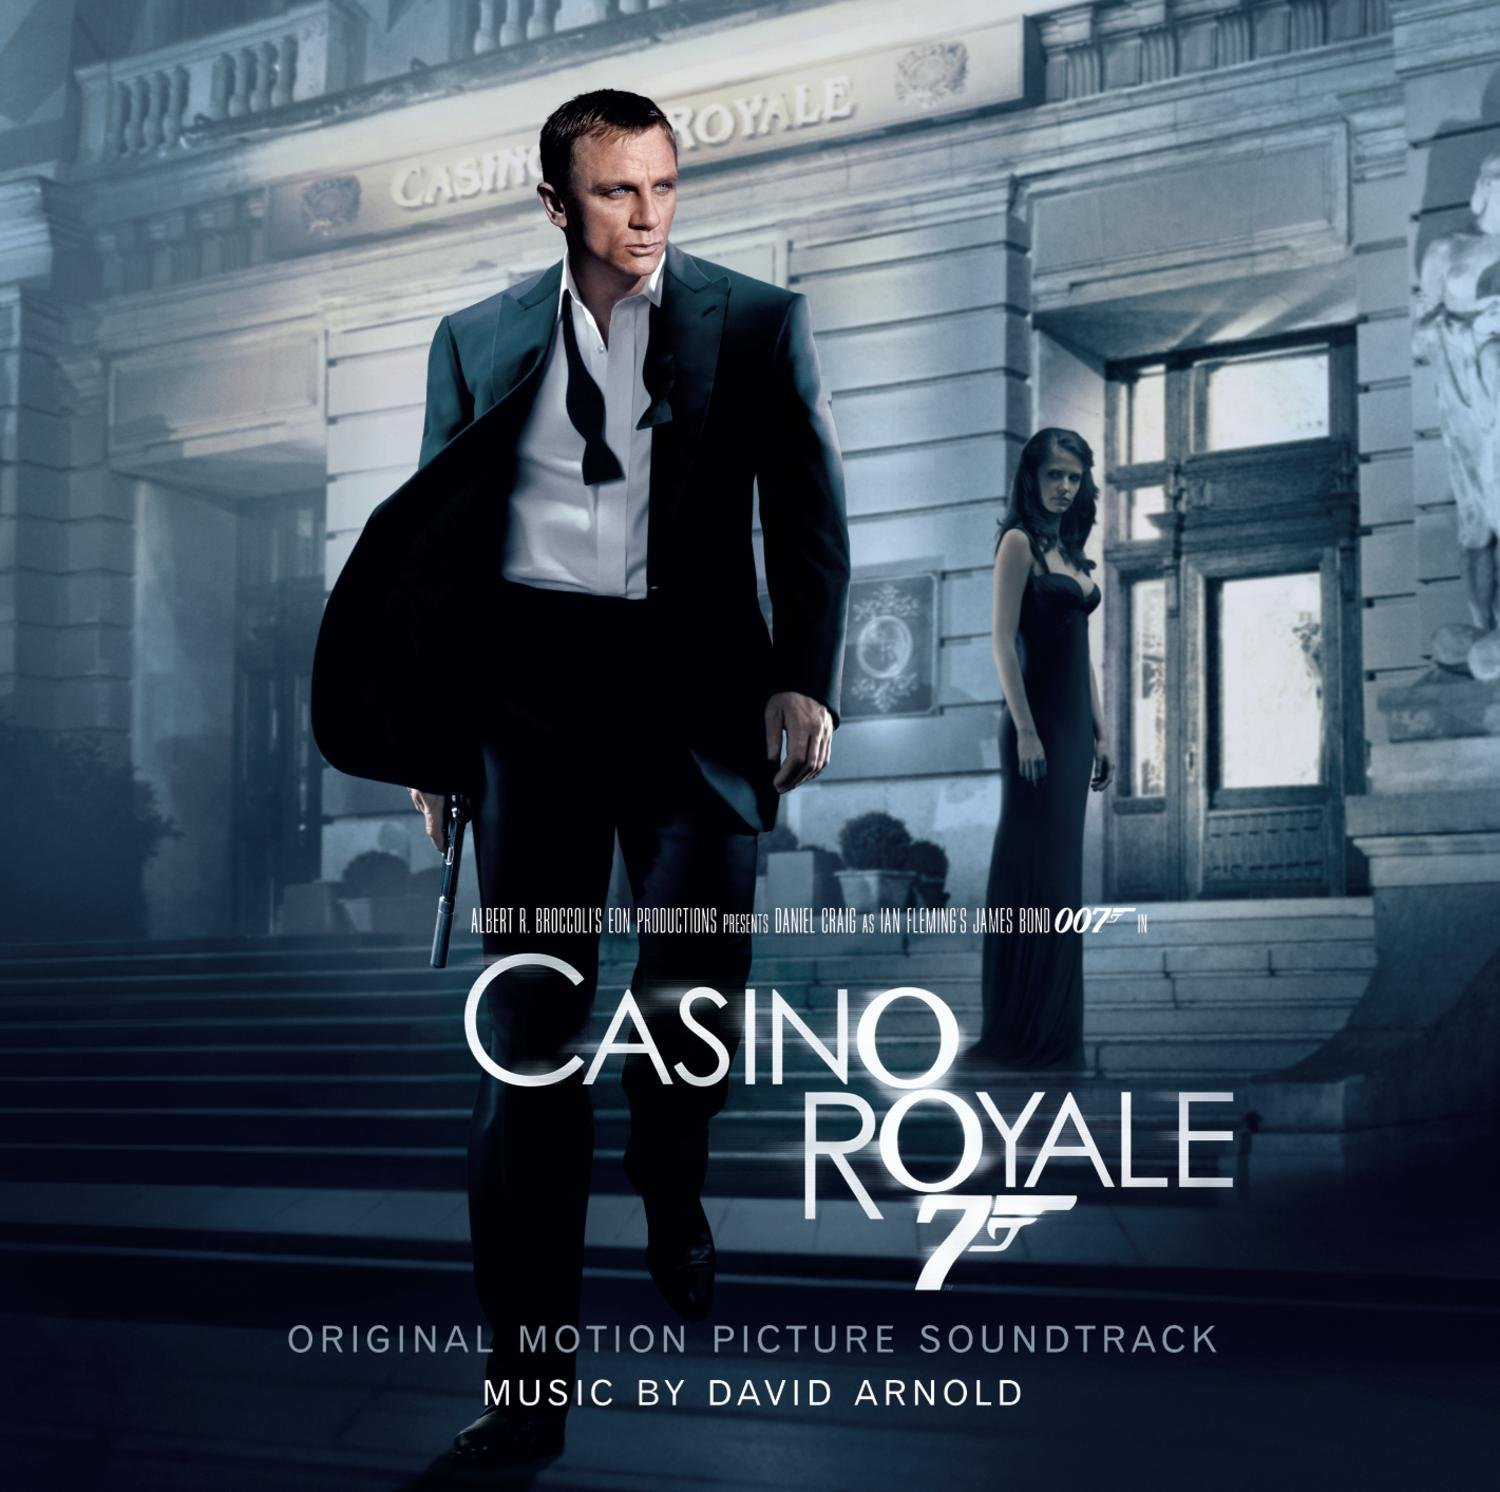 007 casino royale soundtrack 2006 gambling holdem jack online party poker